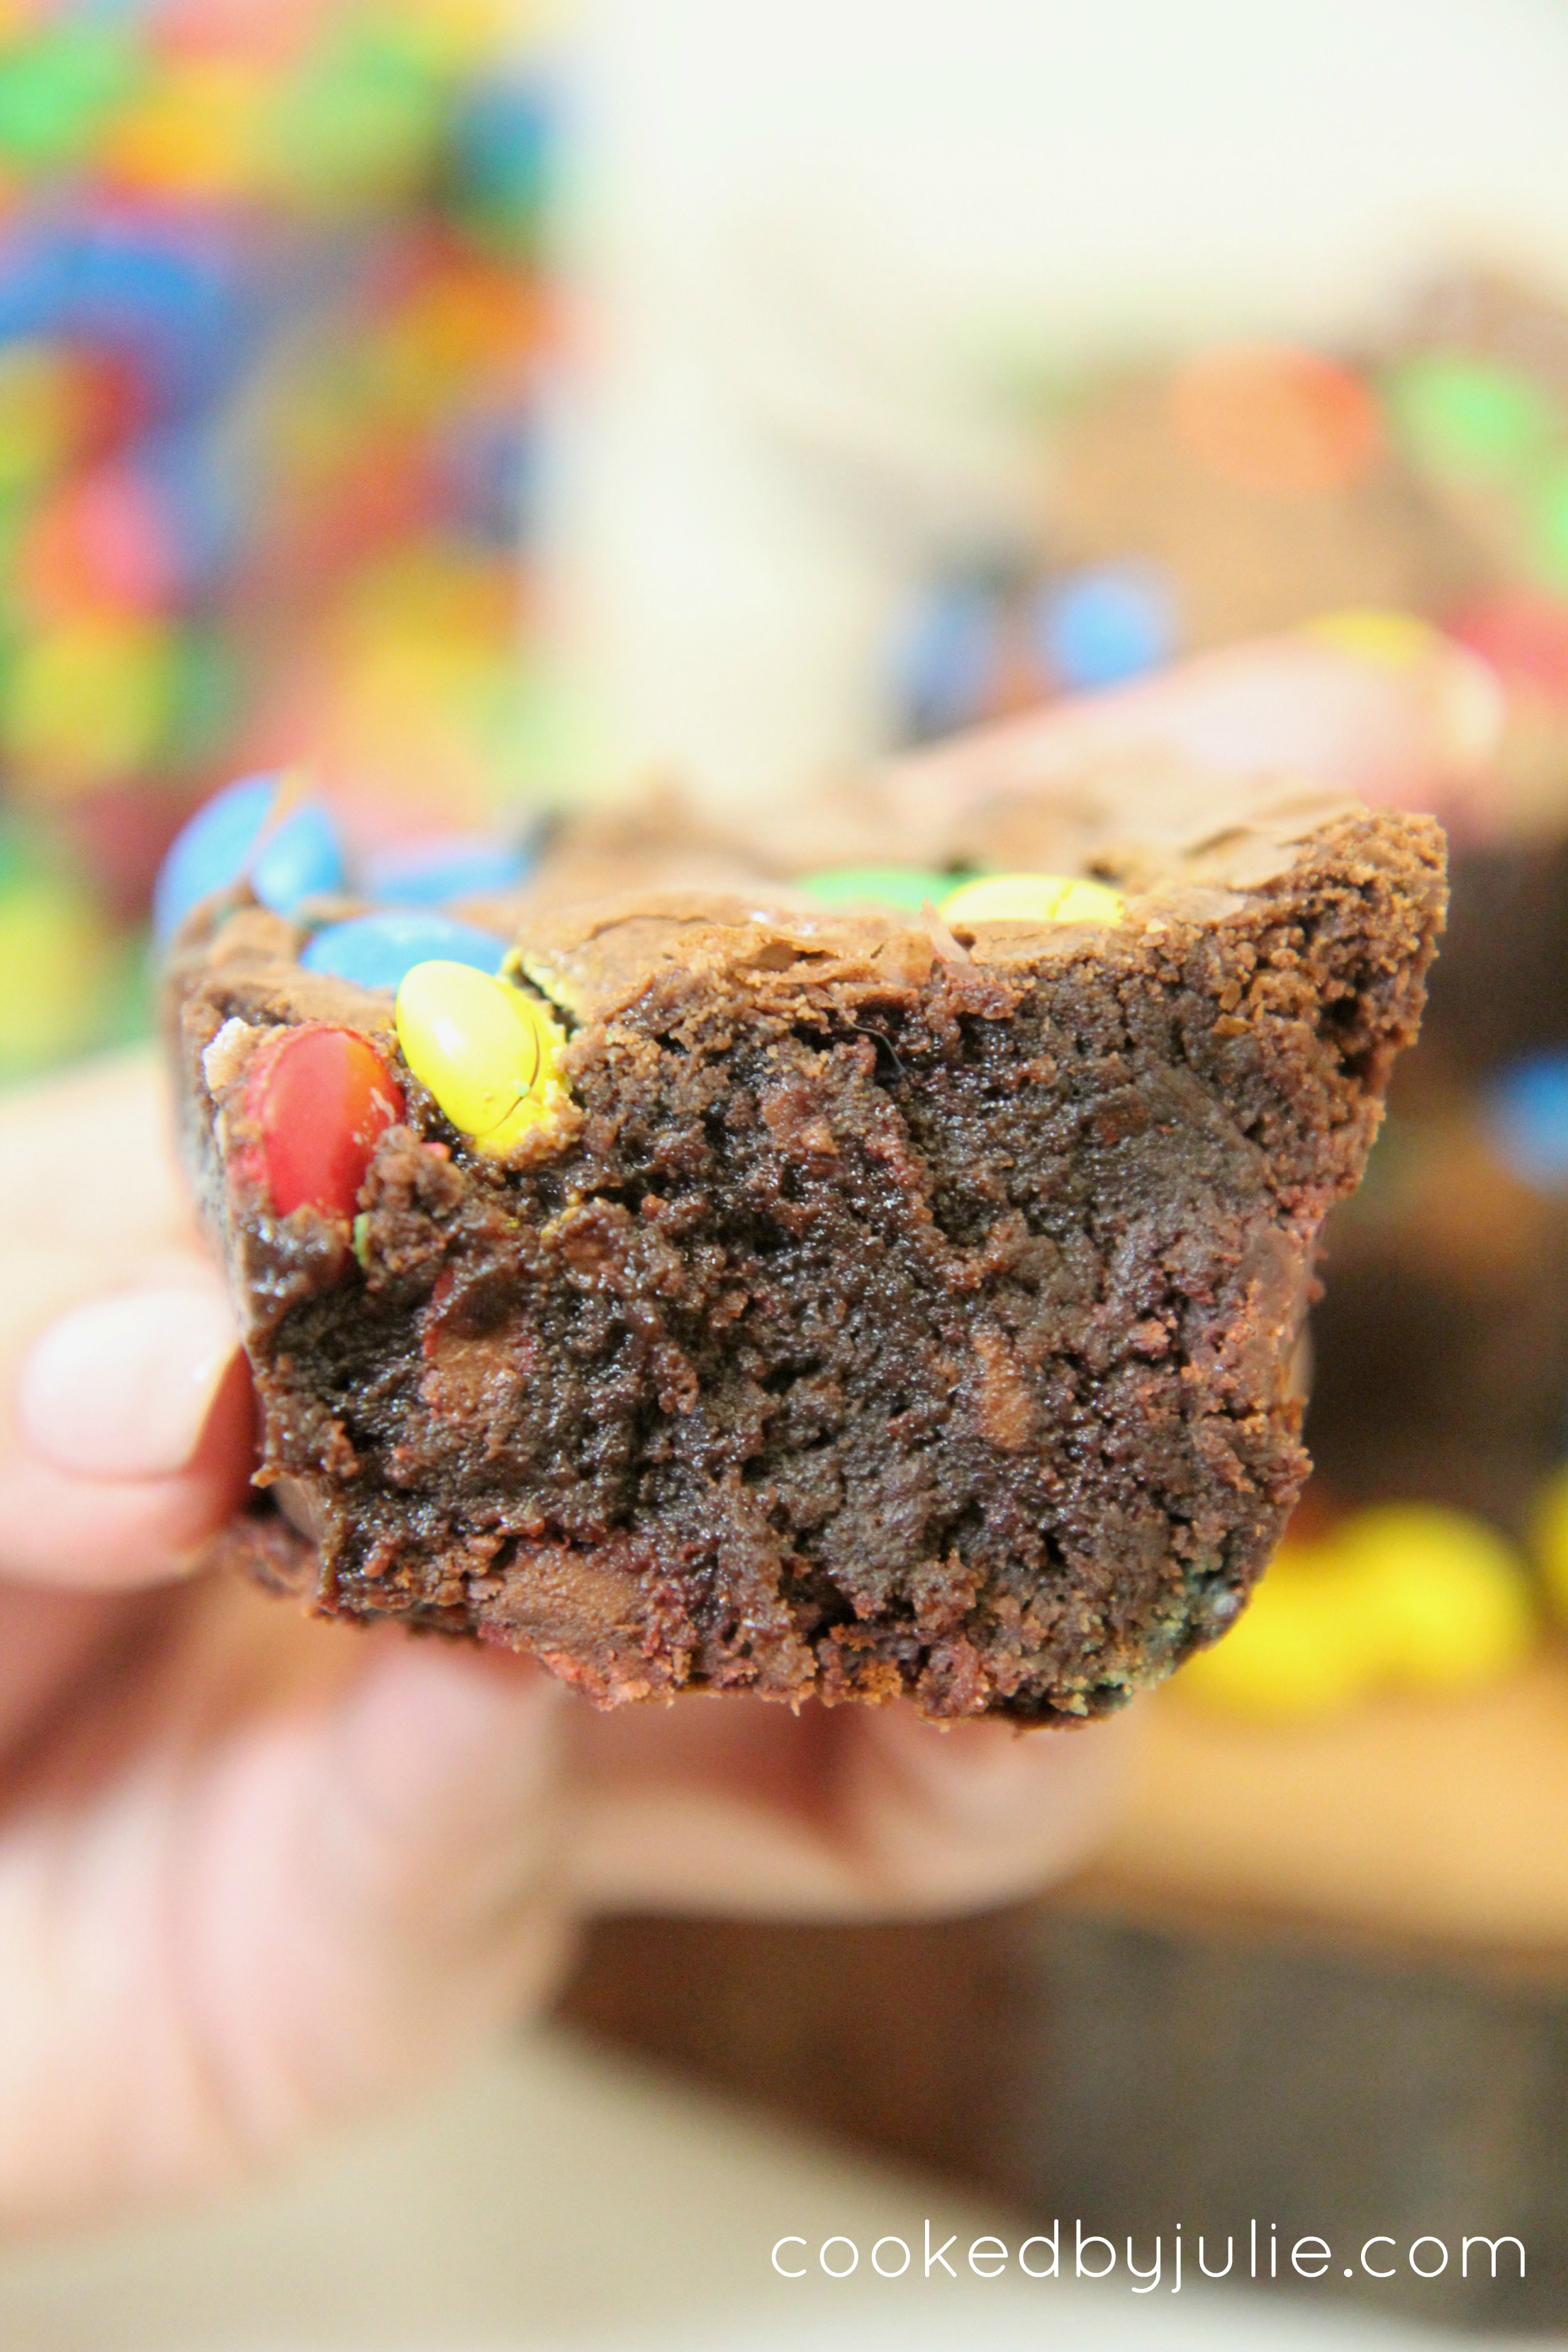 These fudgy chocolate brownies are perfectly baked with M&M pieces in every bite